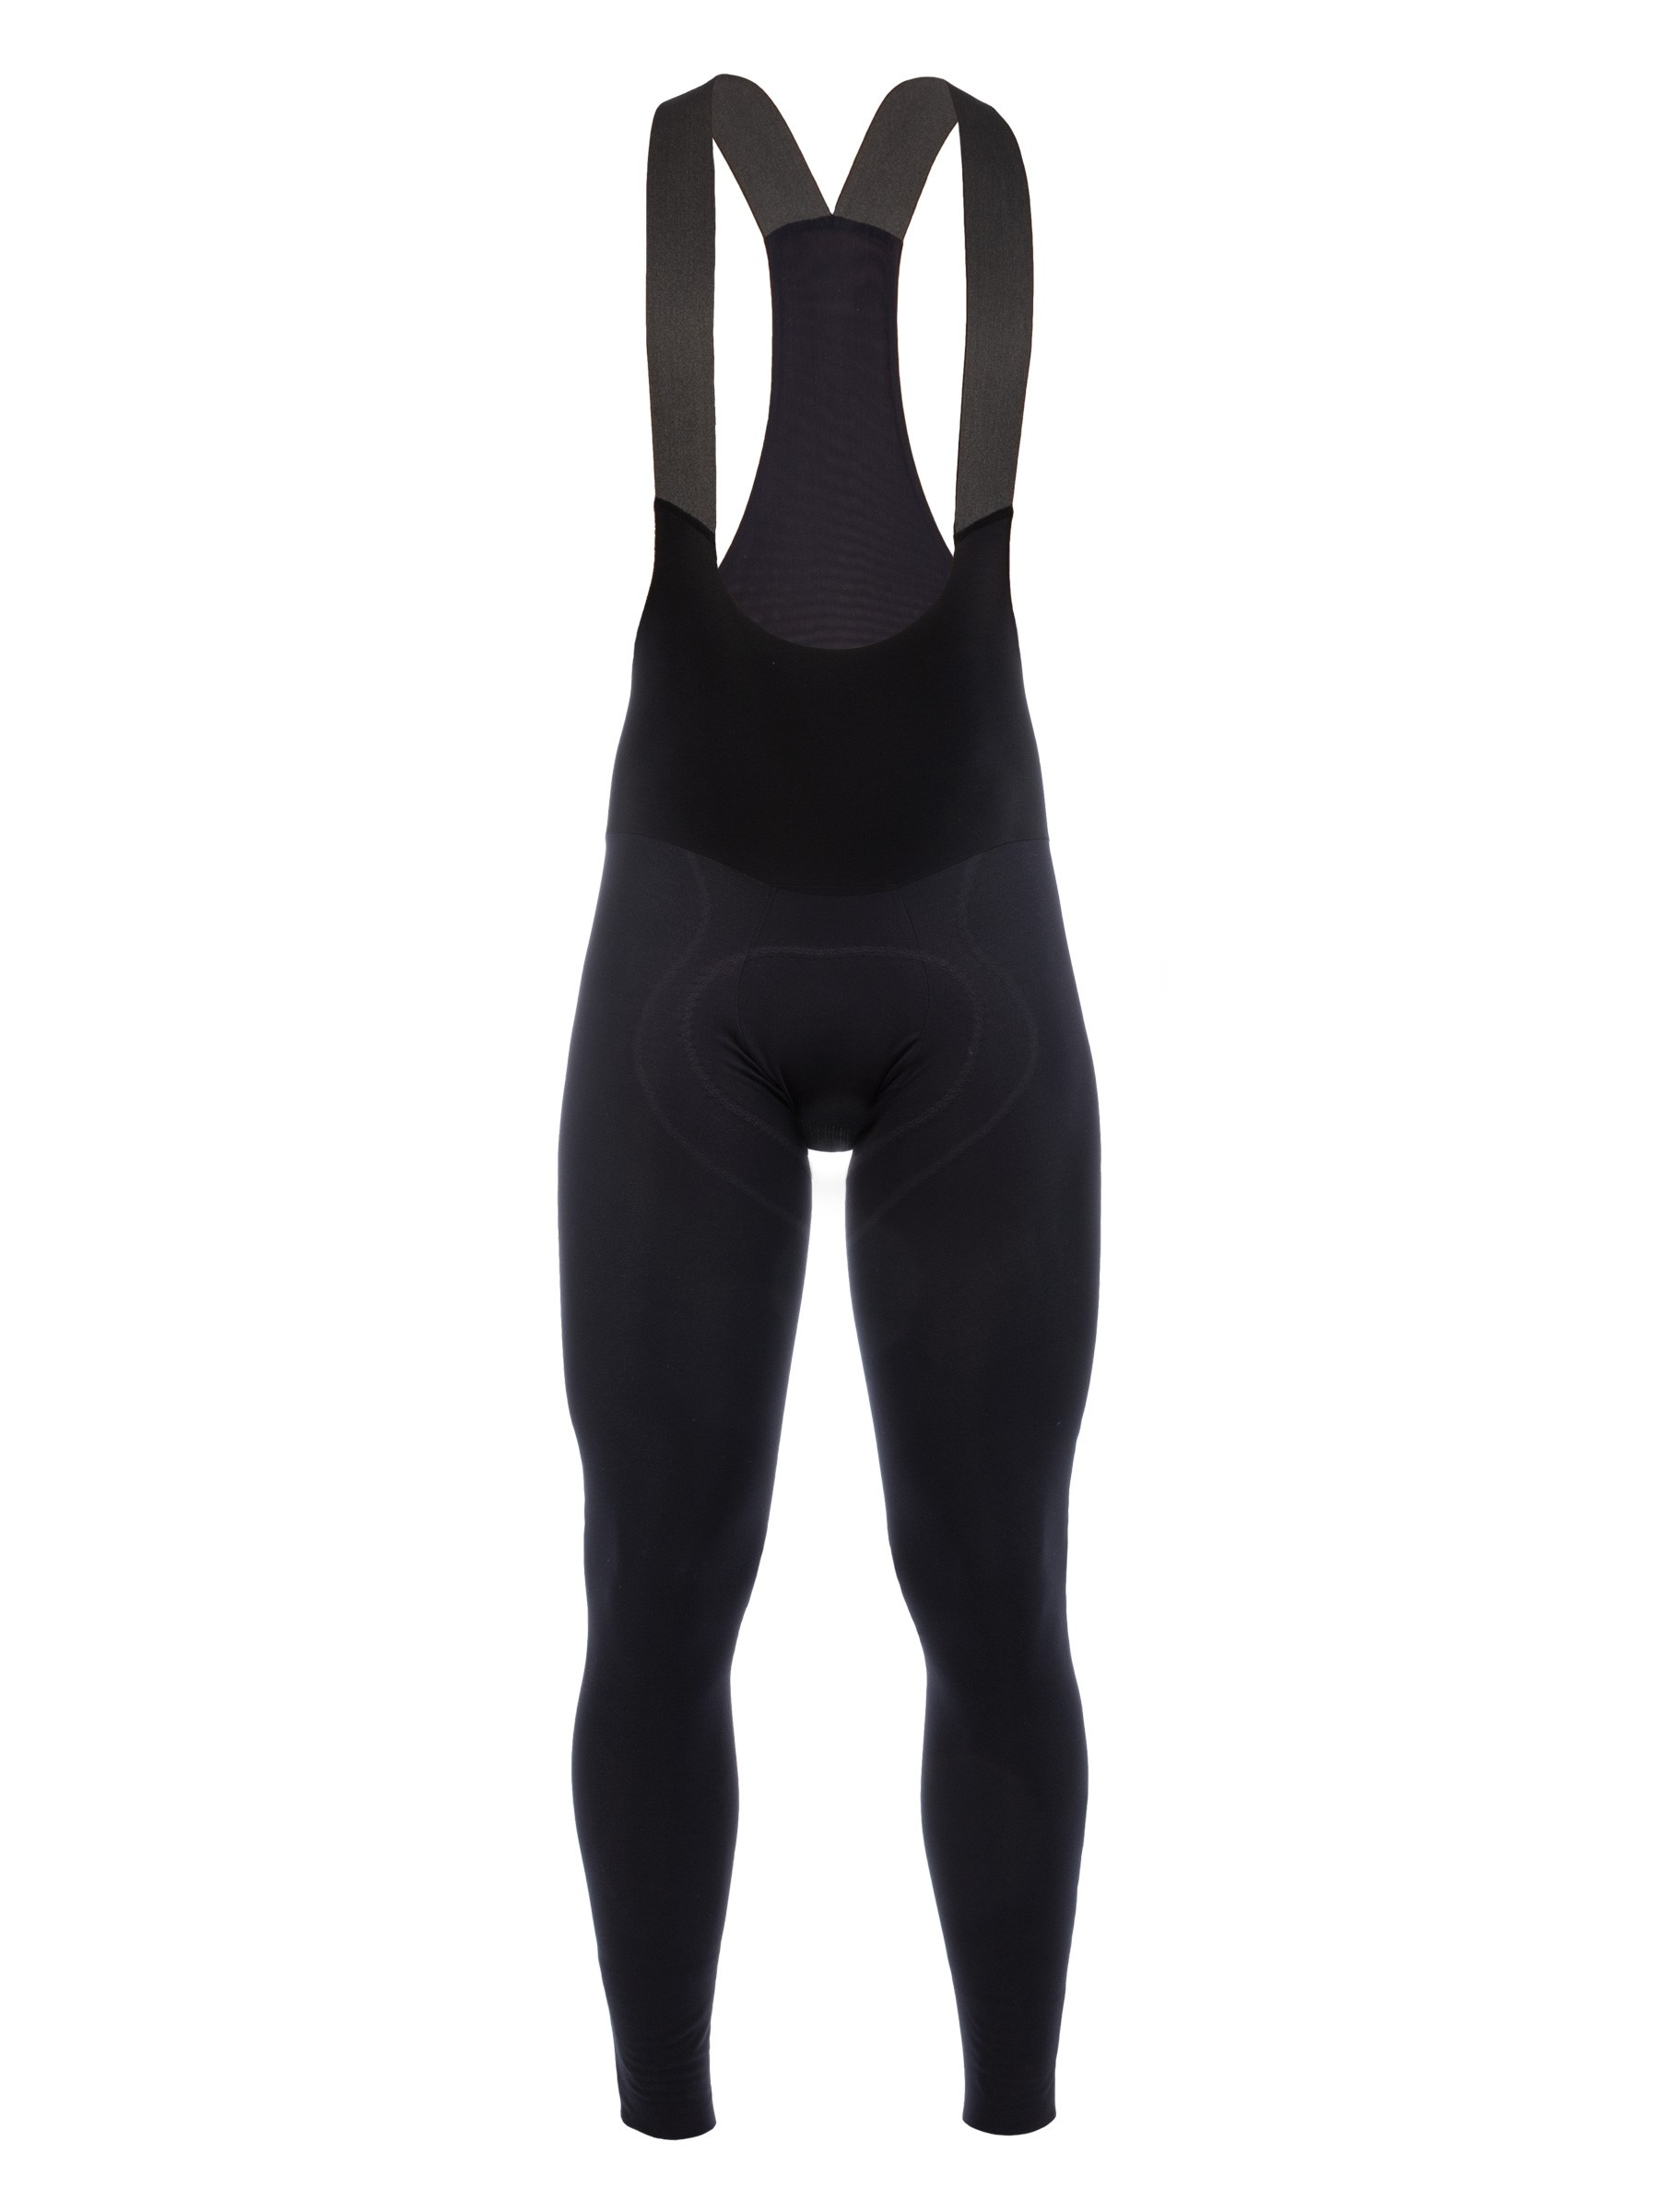 winter cycling bib shorts